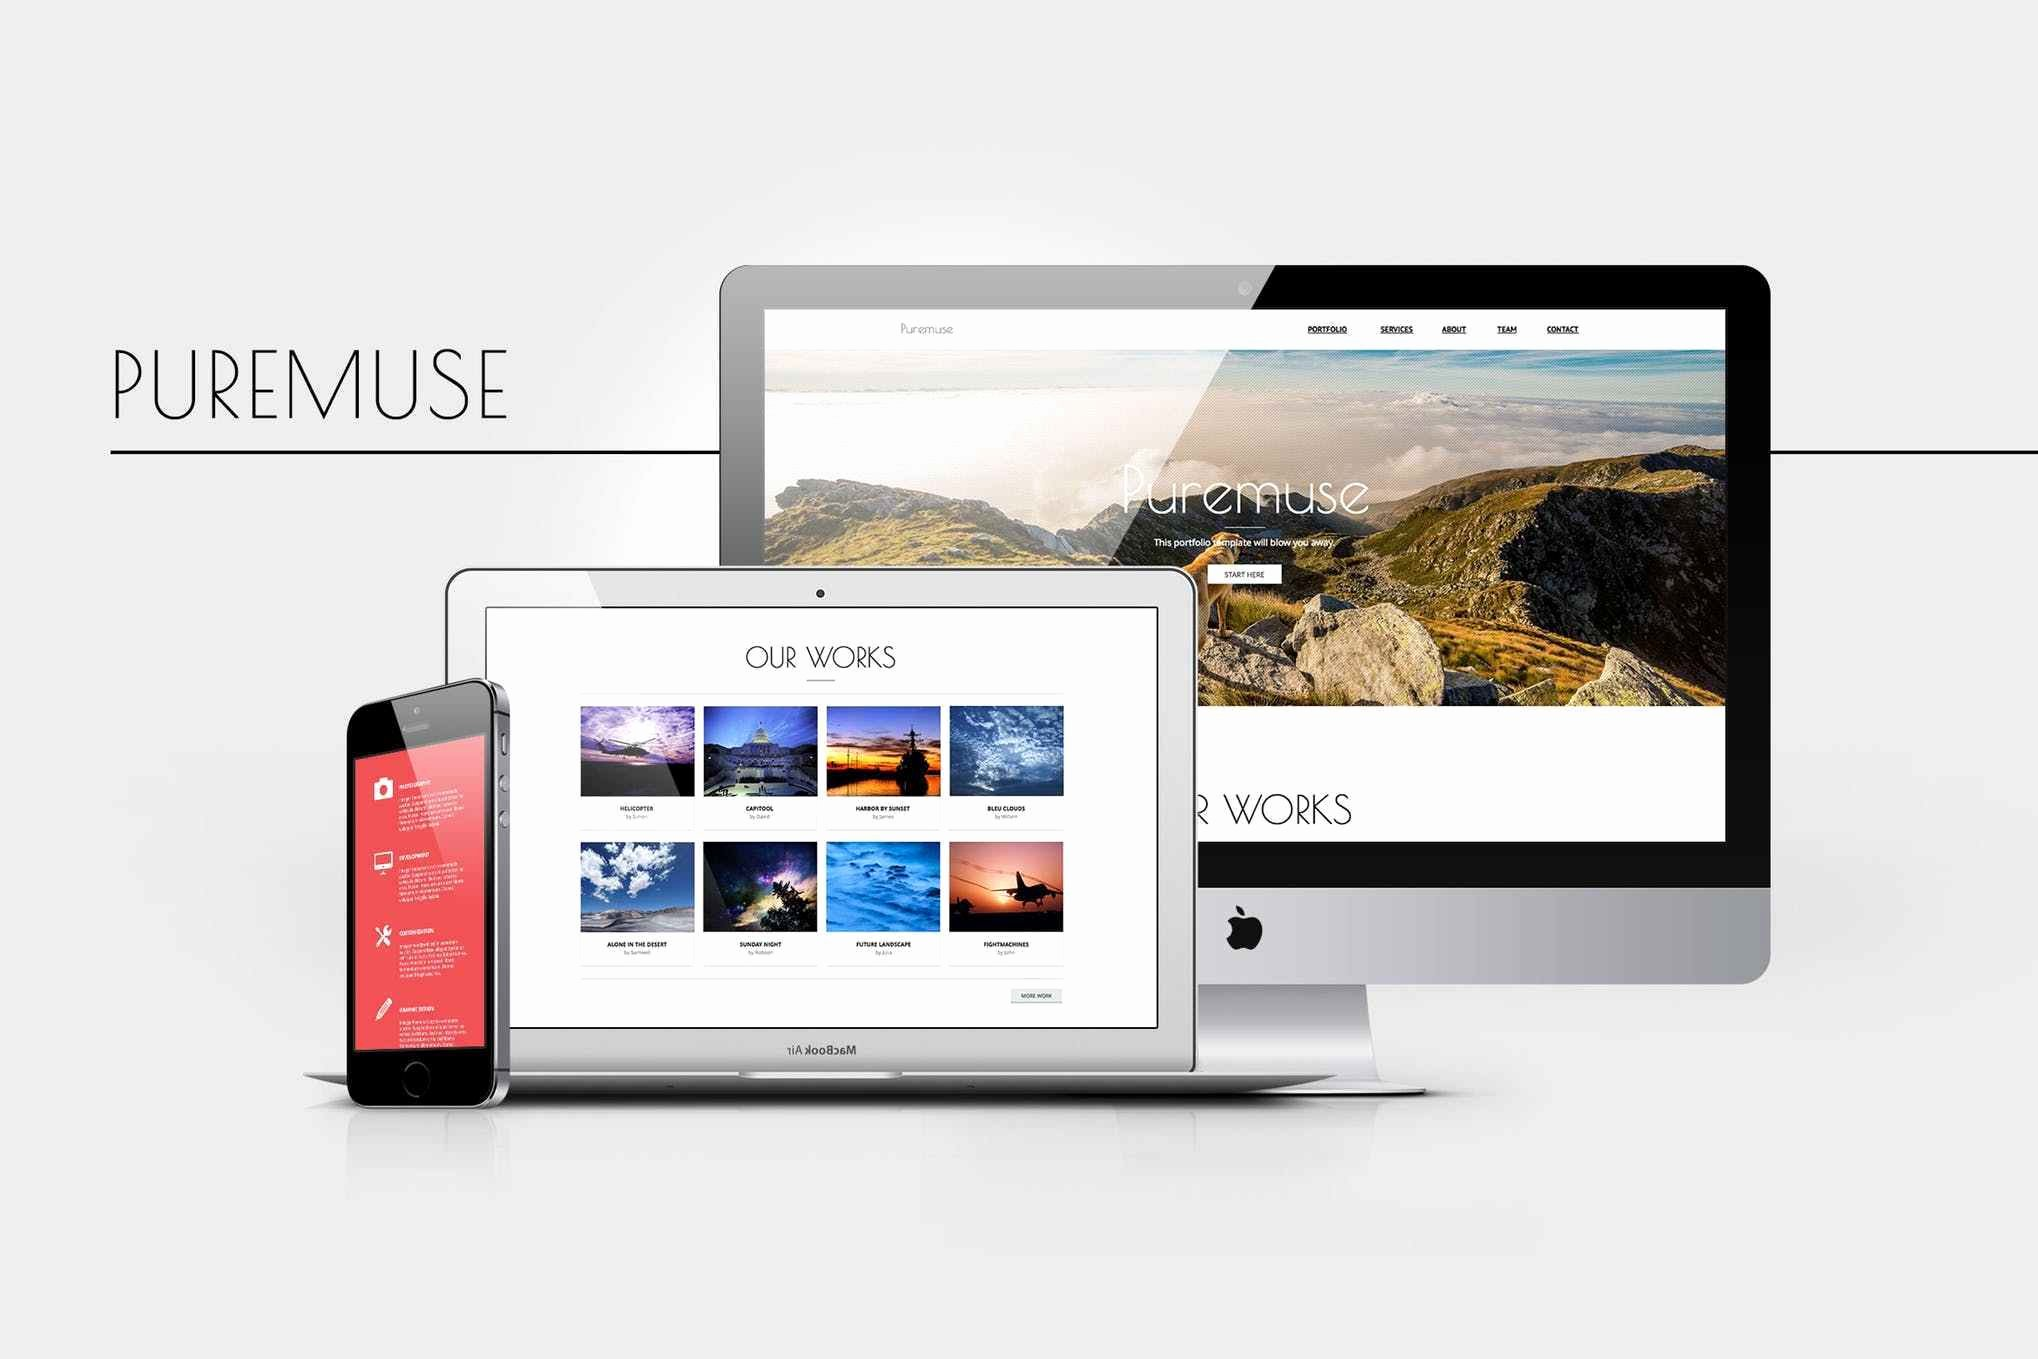 Free Download Puremuse Clean Adobe Muse Template for